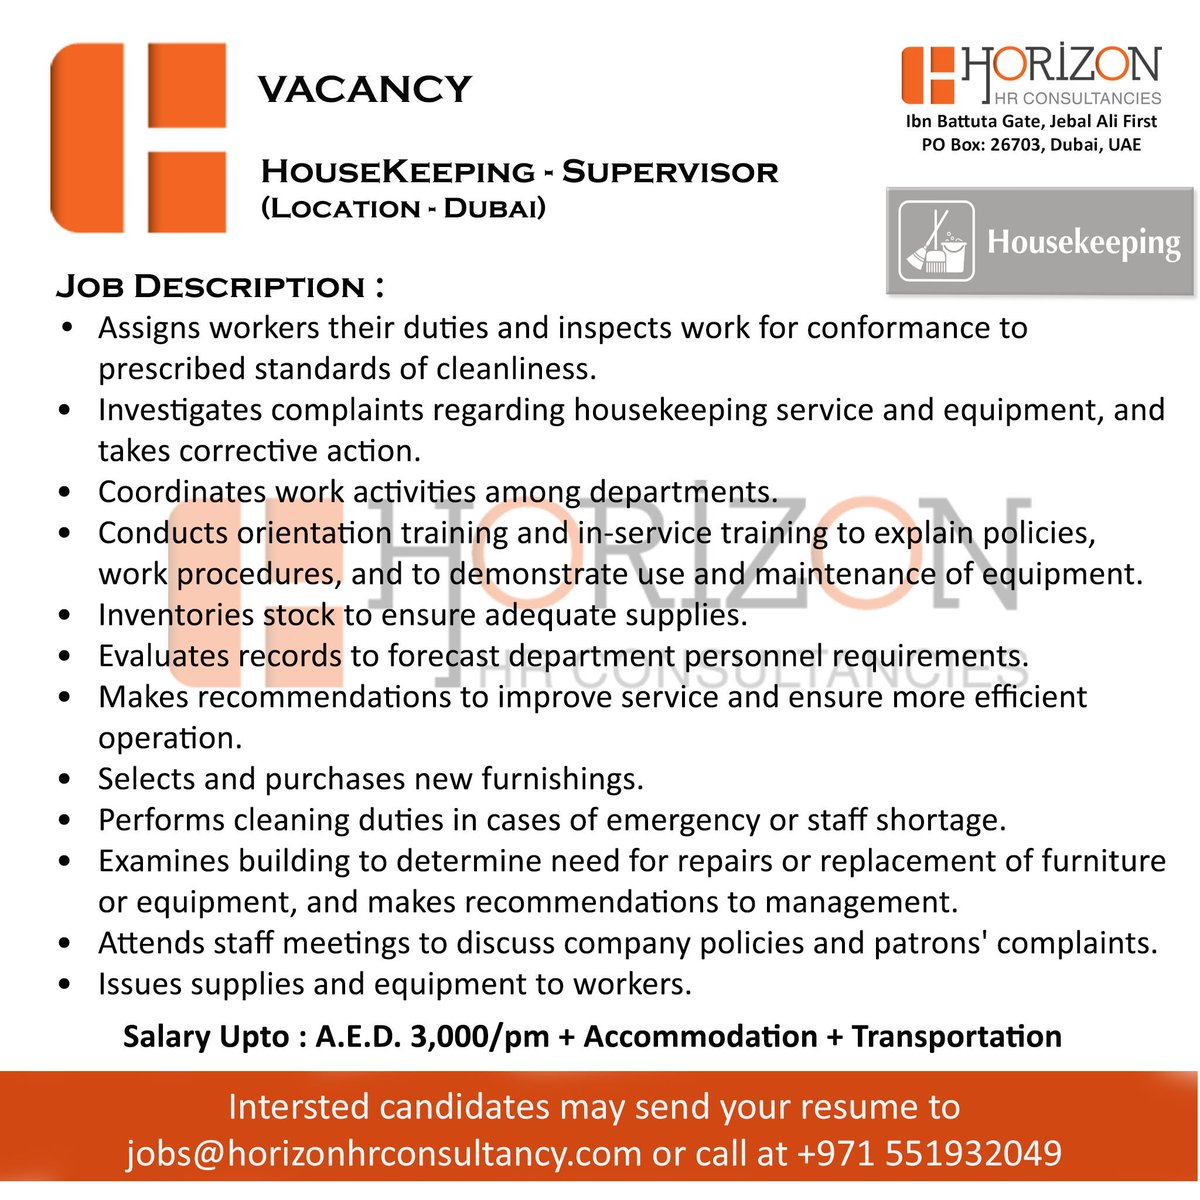 Horizon Capital Hr Consultancies On Twitter Now Hiring Housekeeping Supervisor Location Dubai Dubaibiz Hotjob Jobs Sharjaha Abudhabi Uae